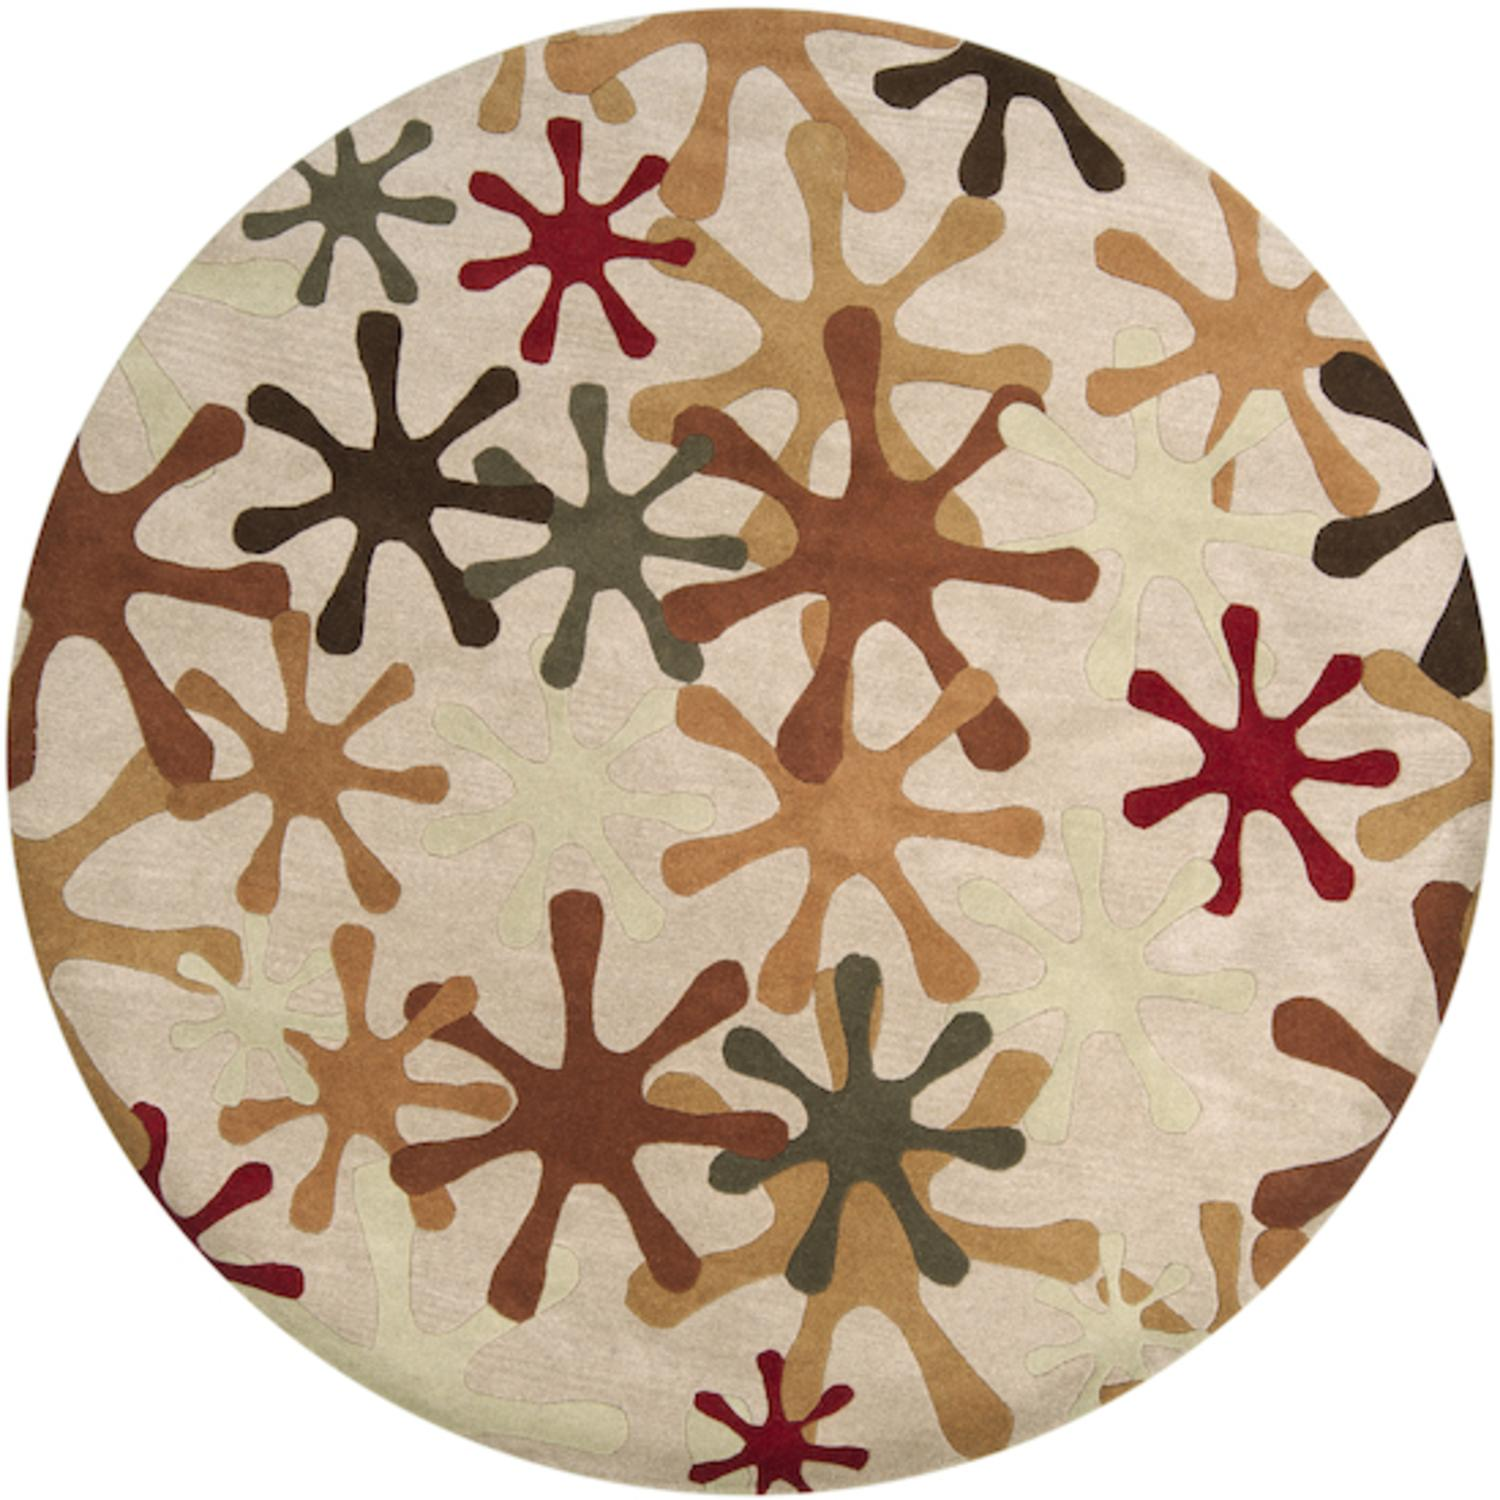 6' Urbane Jacks Carnelian Red and Army Green Round Wool Area Throw Rug